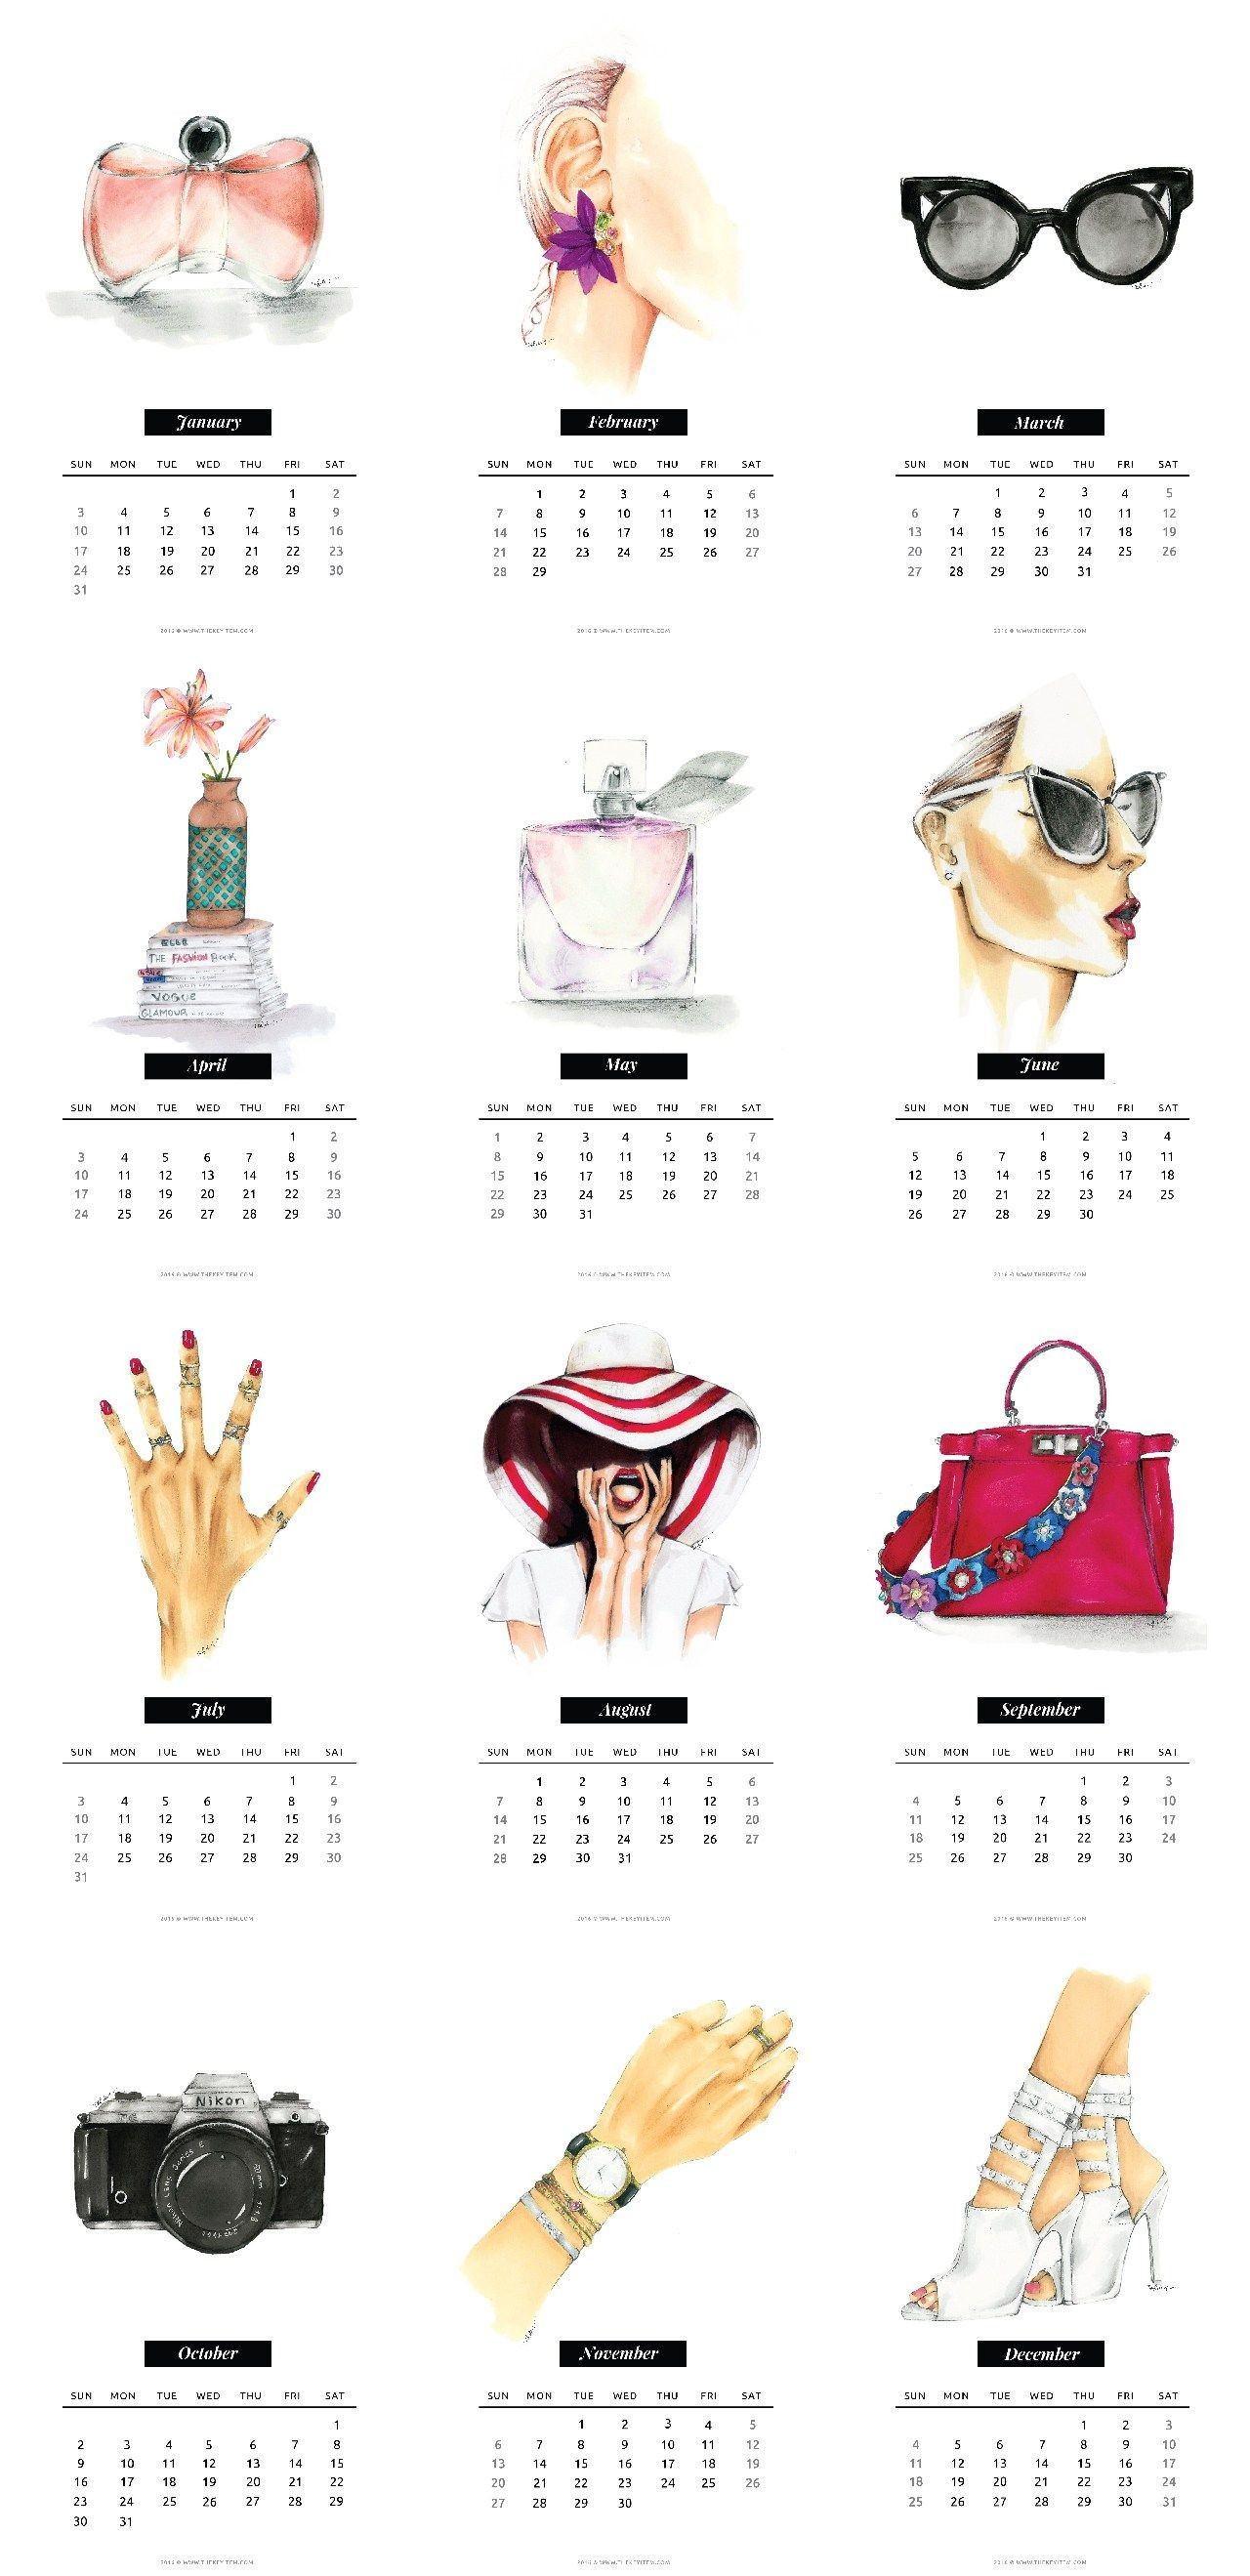 Calendario 2019 Imprimir Personalizado Más Actual Calendario Ilustrado 2016 Gratis Craft Pinterest Of Calendario 2019 Imprimir Personalizado Mejores Y Más Novedosos Realistic Miniature Lip Kit by Kylie Jenner Tutorial Dollhouse Diy